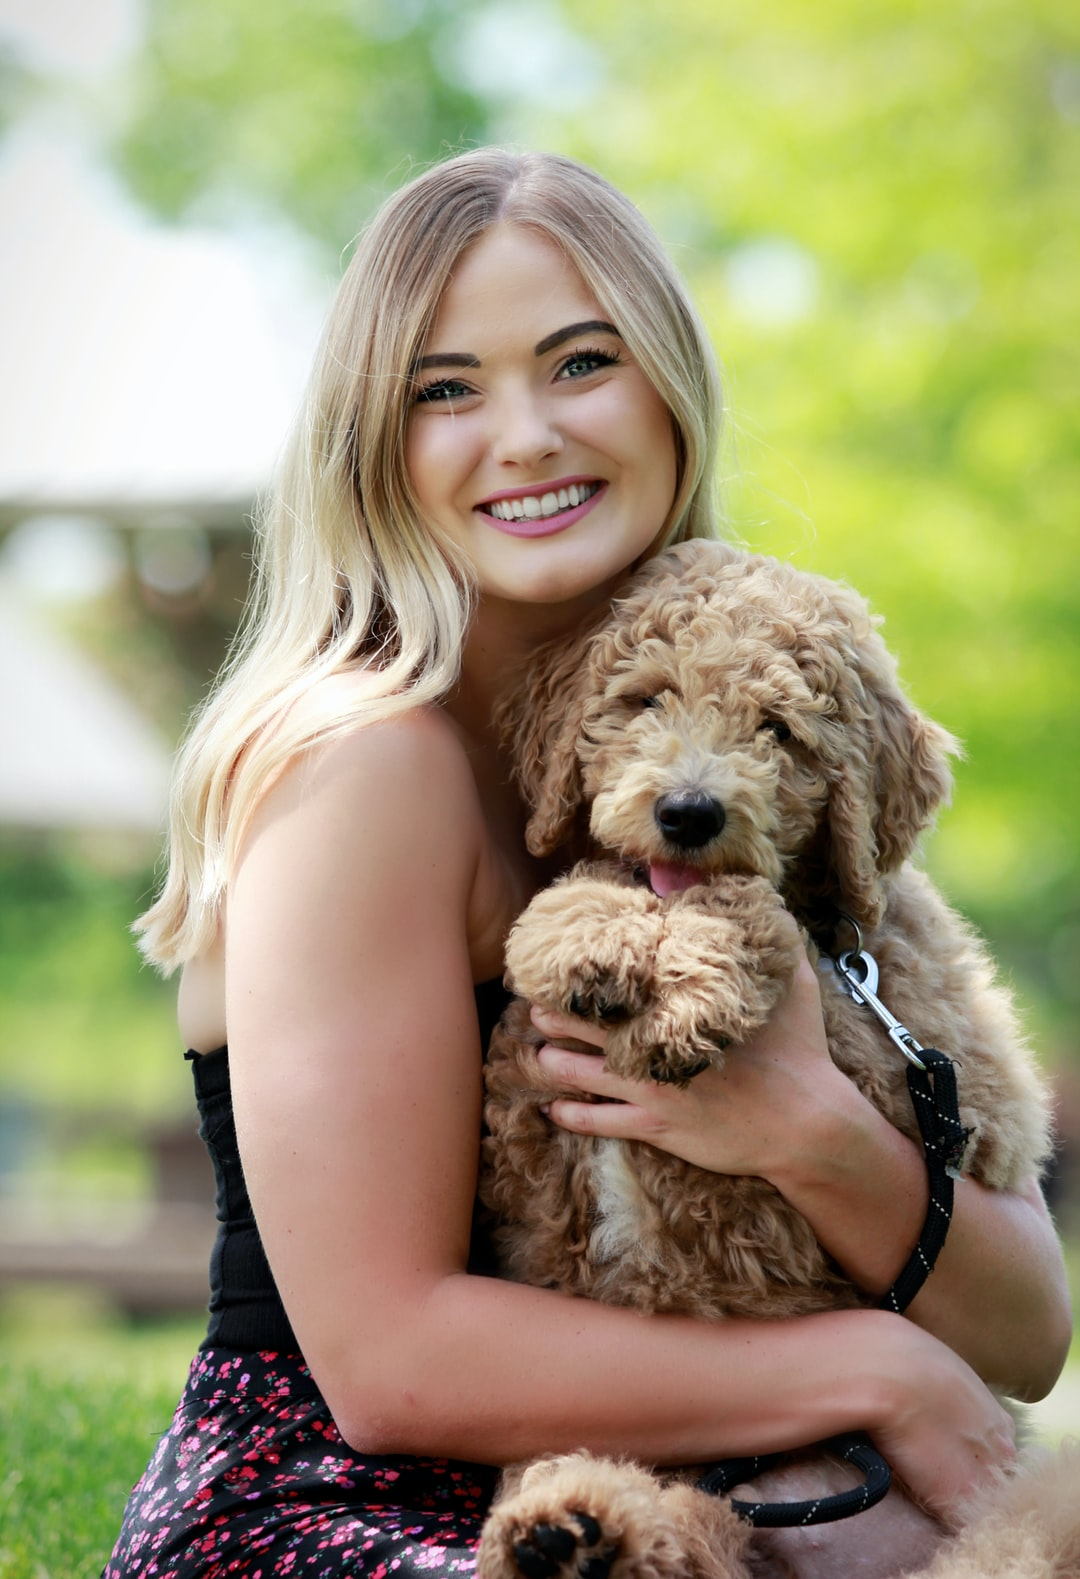 A woman cuddles her goldendoodle puppy.